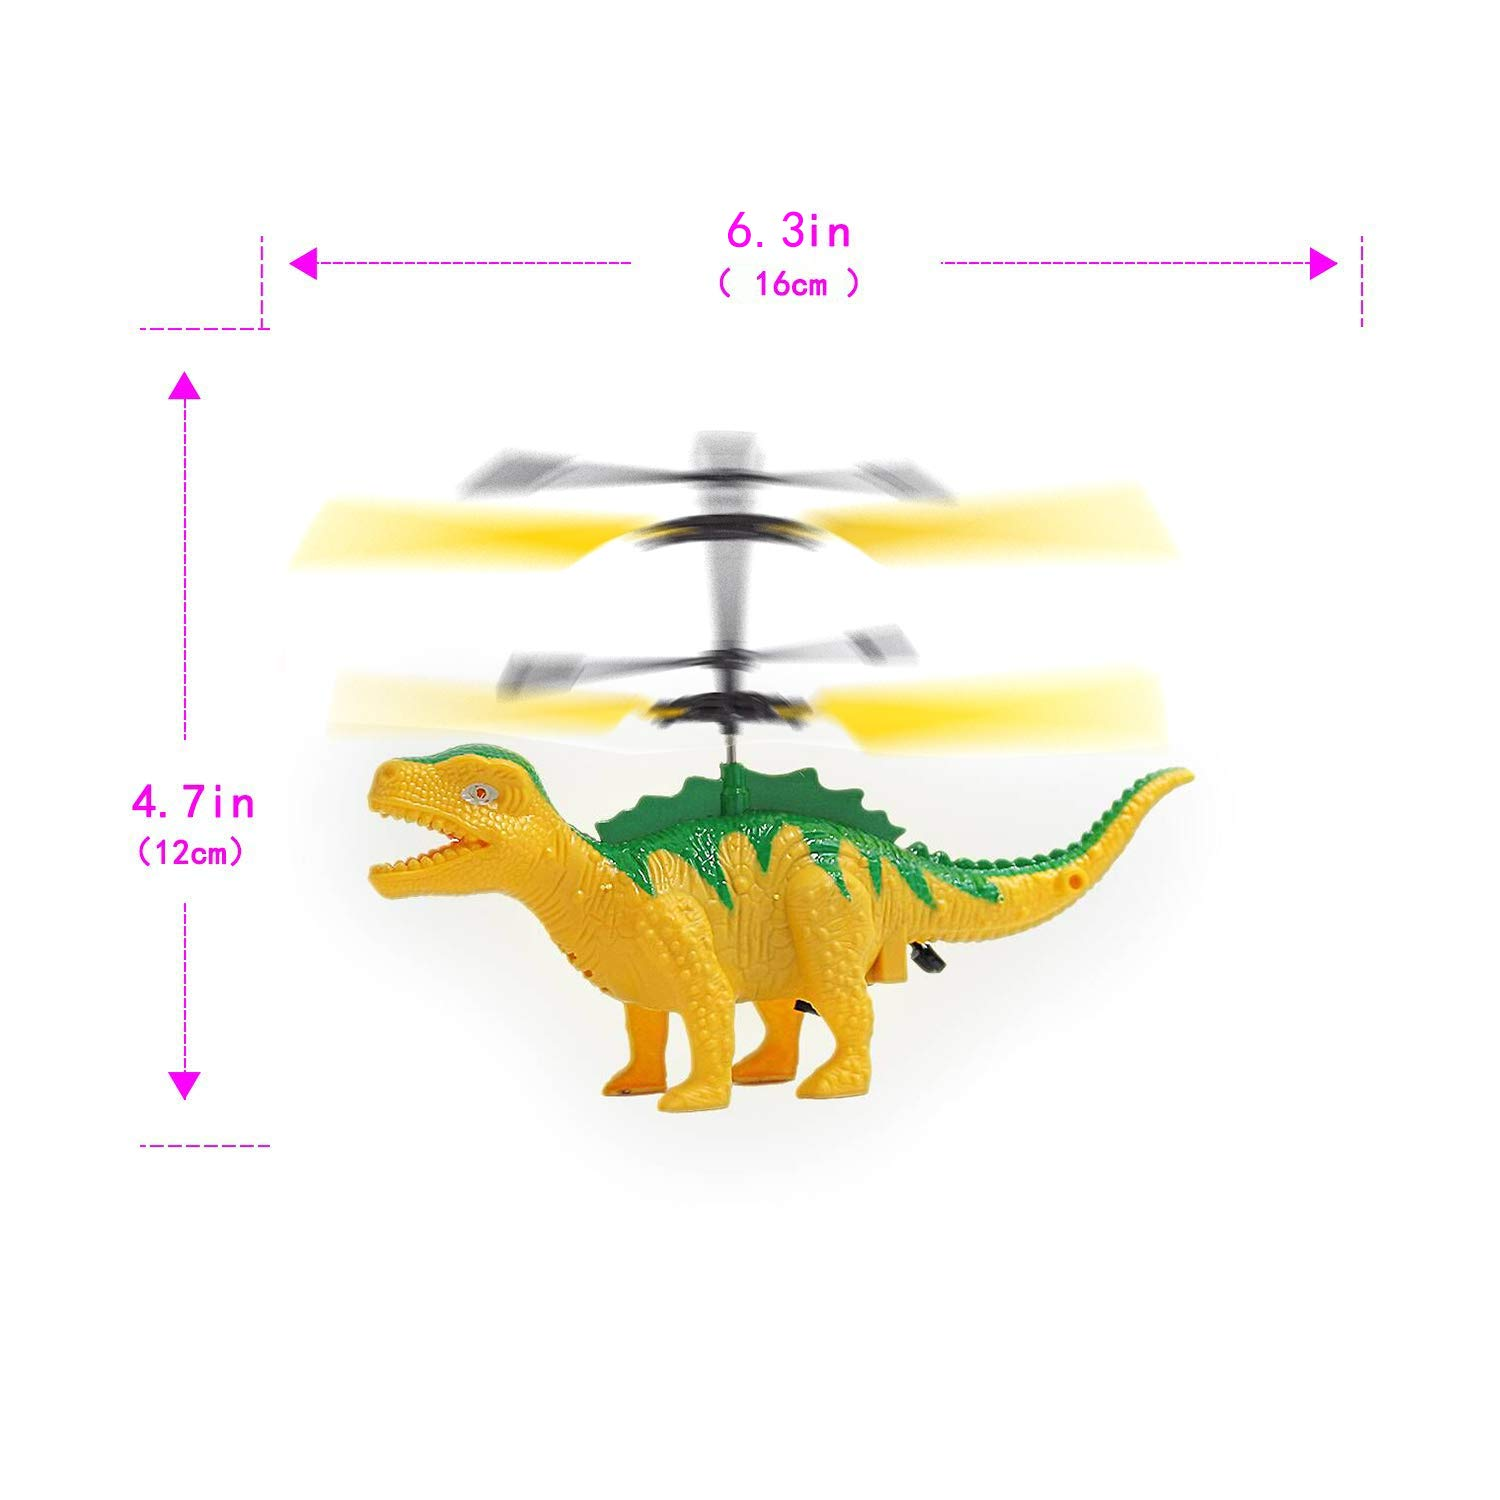 Anda RC Flying Helicopter Dinosaurs Dragon Toys for 6 Year Old Boys Girls Kids, Mini Remote and Hand Controlled Dinosaurs Helicopter for Birthday Holiday Xmas by Anda (Image #2)